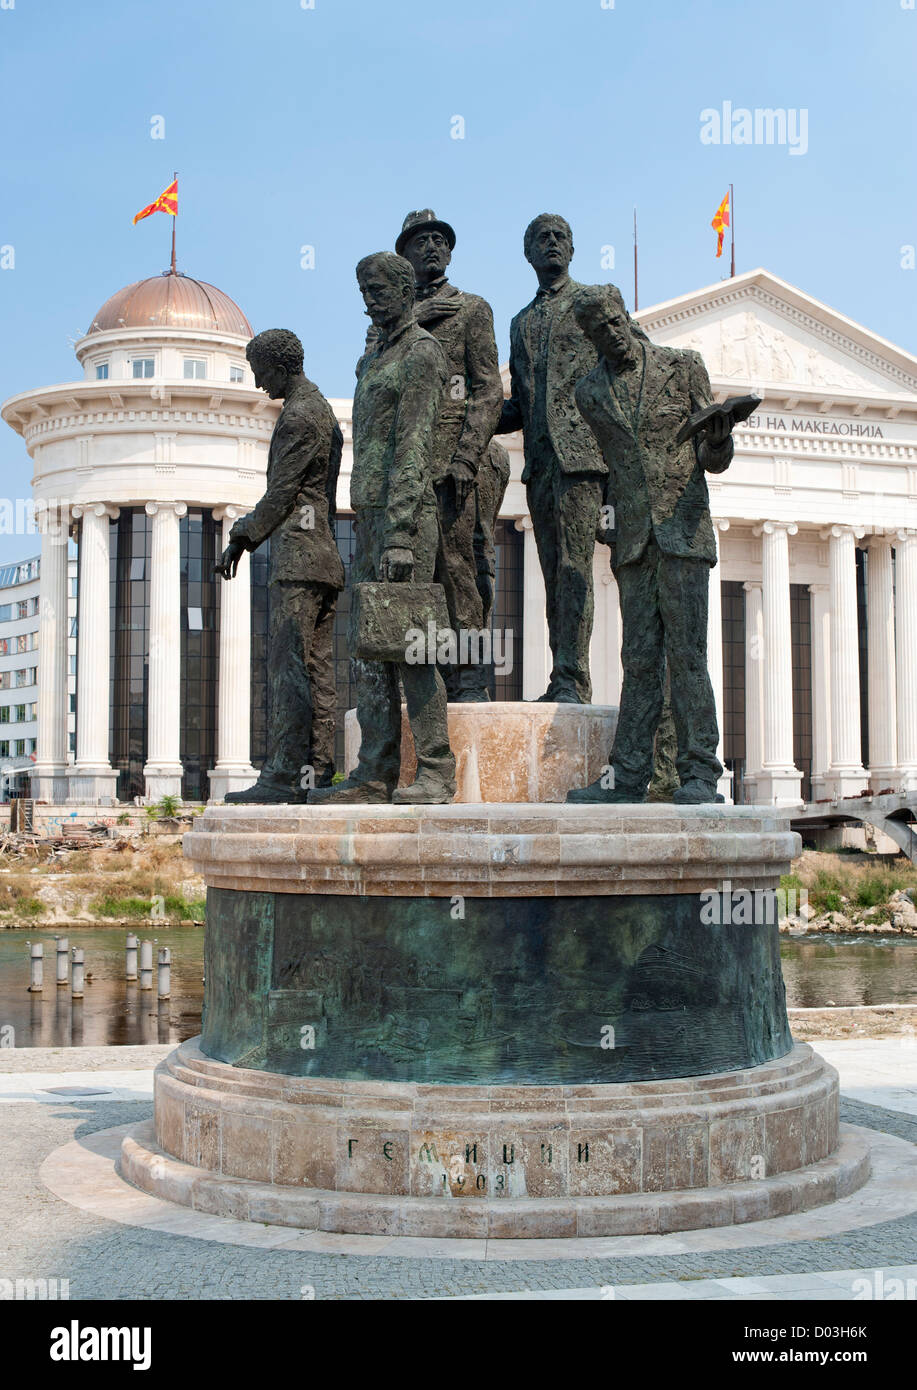 The Boatmen of Thessaloníki monument in Skopje, the capital of Macedonia. - Stock Image